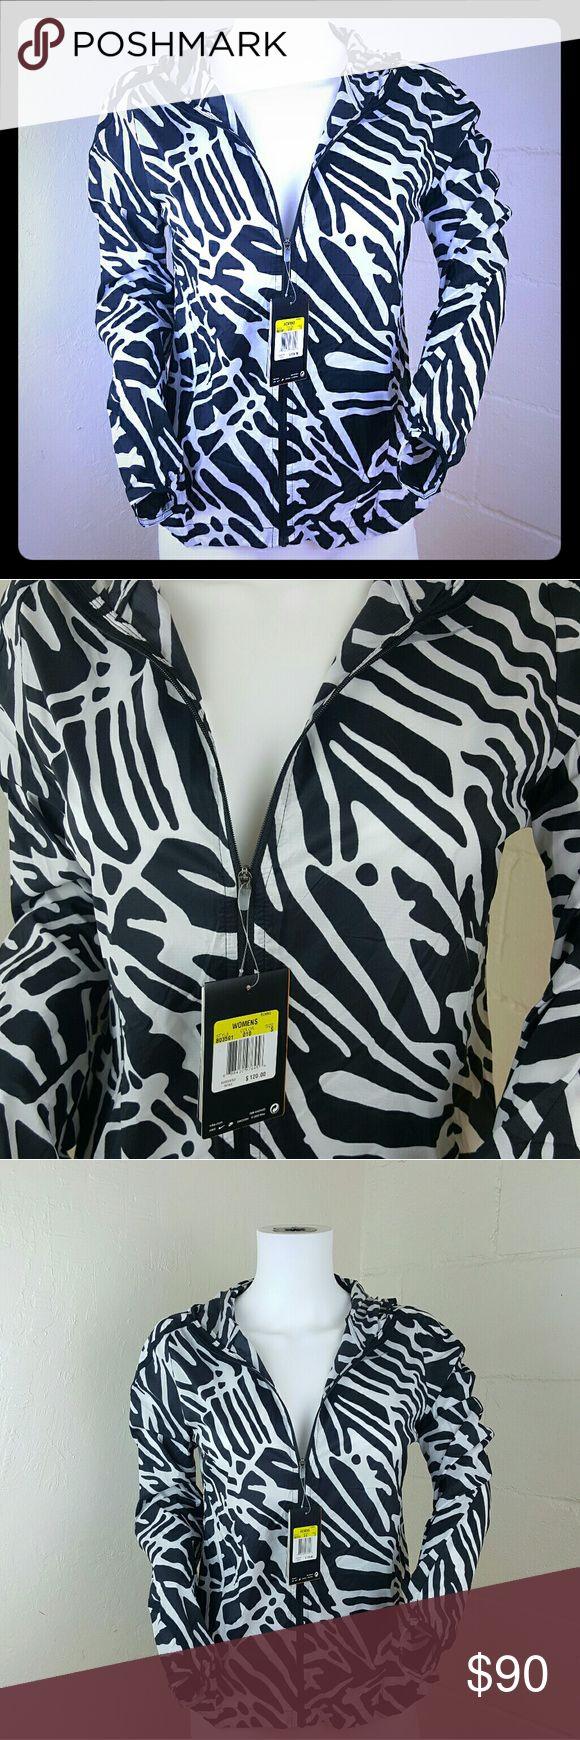 Nike Impossibly Light Womens Running Jacket (NWT) BRAND NEW WITH TAGS  Size - Small  Black & White  No damages Originally  $120.00  The hood has a piece that allows you to roll the jacket easily into small size to carry with you on the go.  * You can also find leggings,shoes,etc that match this palm pattern to wear together!*  The Nike Palm Impossibly Light Women's Running Jacket is updated with nylon fabric that's backed with acrylic for even greater resistance to wind and rain. The jacket…